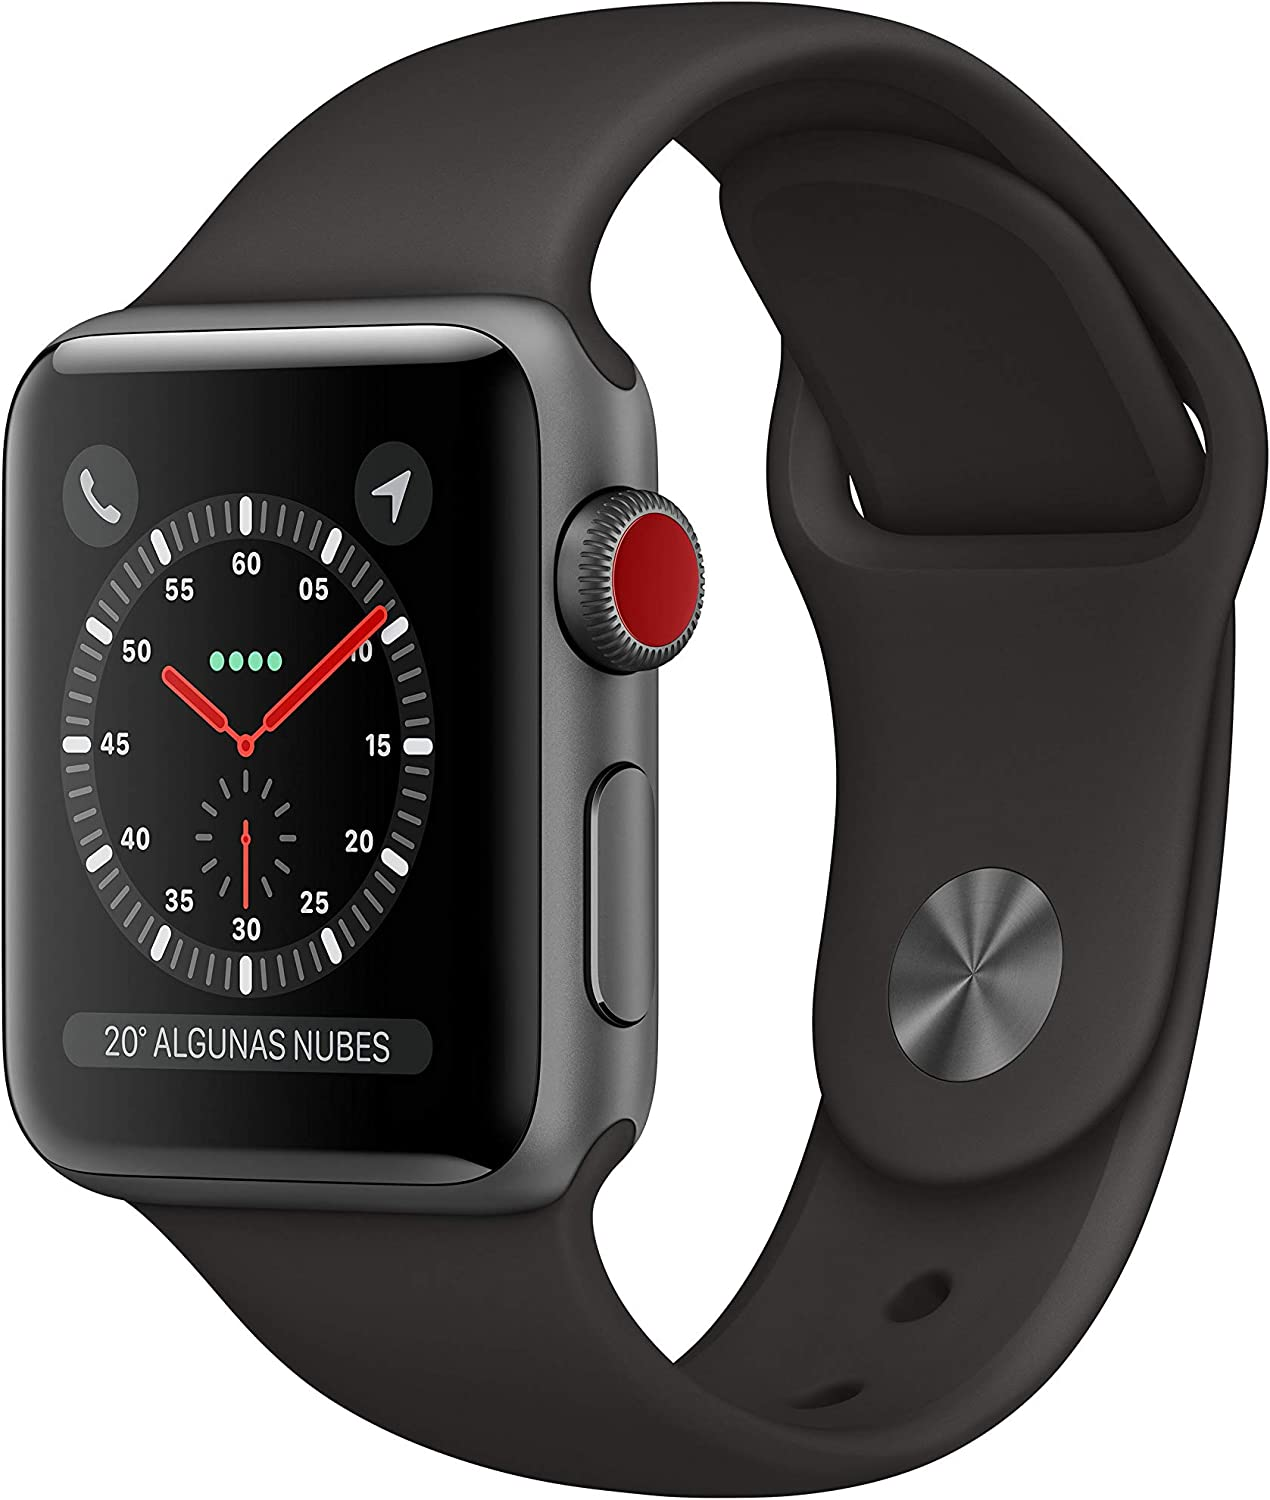 Apple Watch Series 3 (GPS + Cellular) con caja de 38 mm de aluminio en gris espacial y correa deportiva - Negra